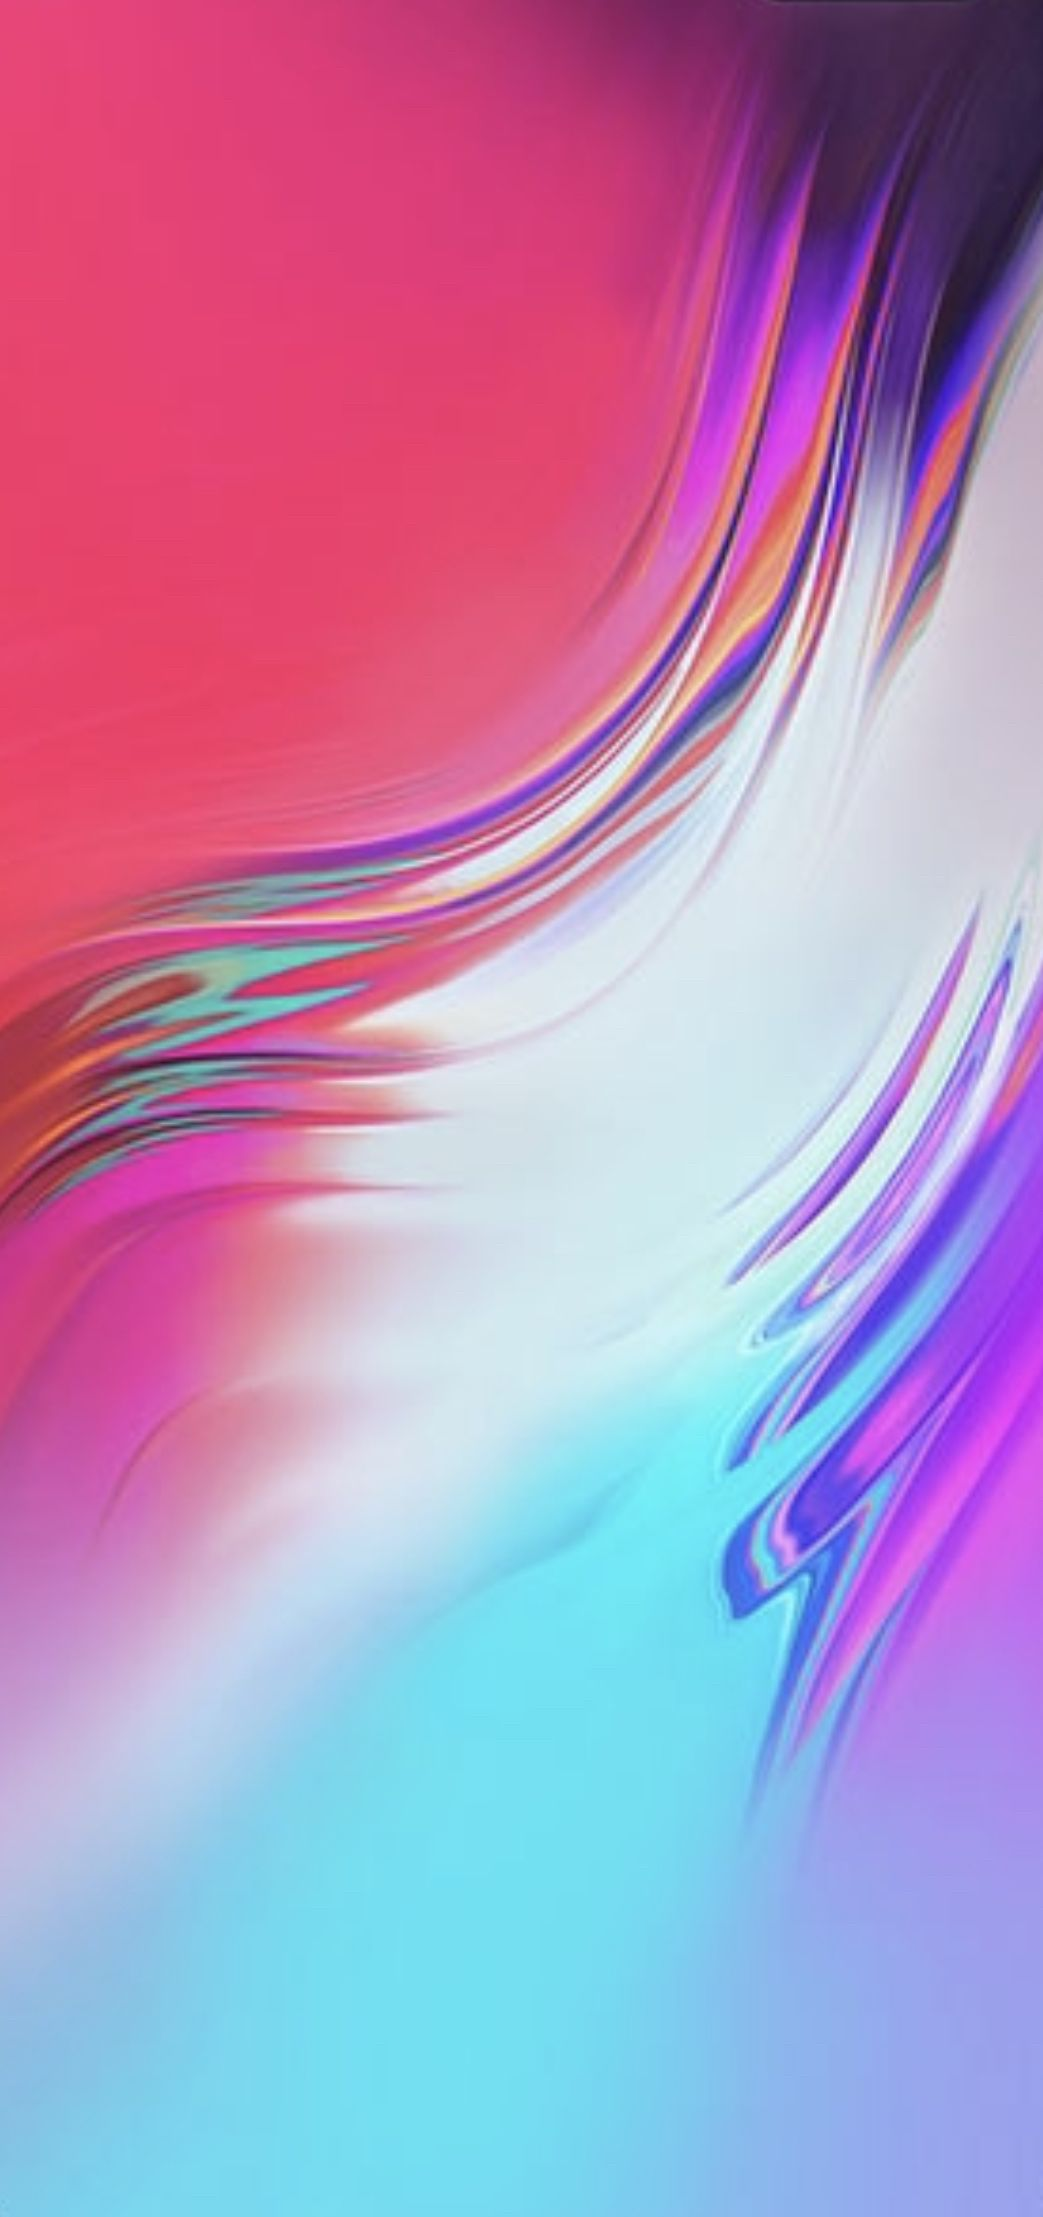 Pin On Wallpapers Galaxy s10 5g samsung a70 wallpaper